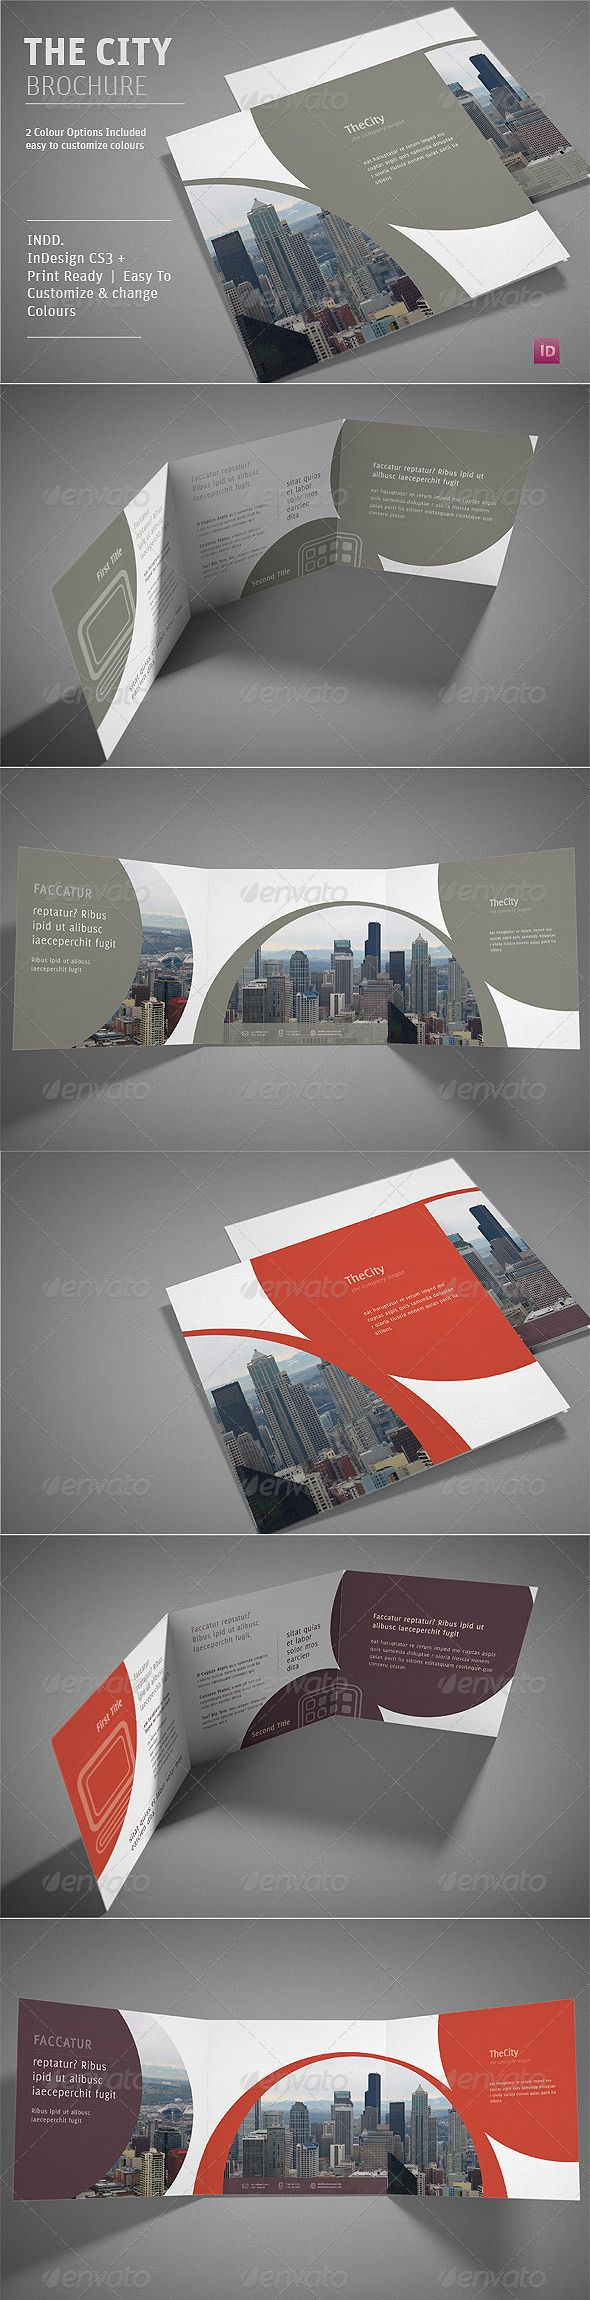 The City Brochure - GraphicRiver Item for Sale